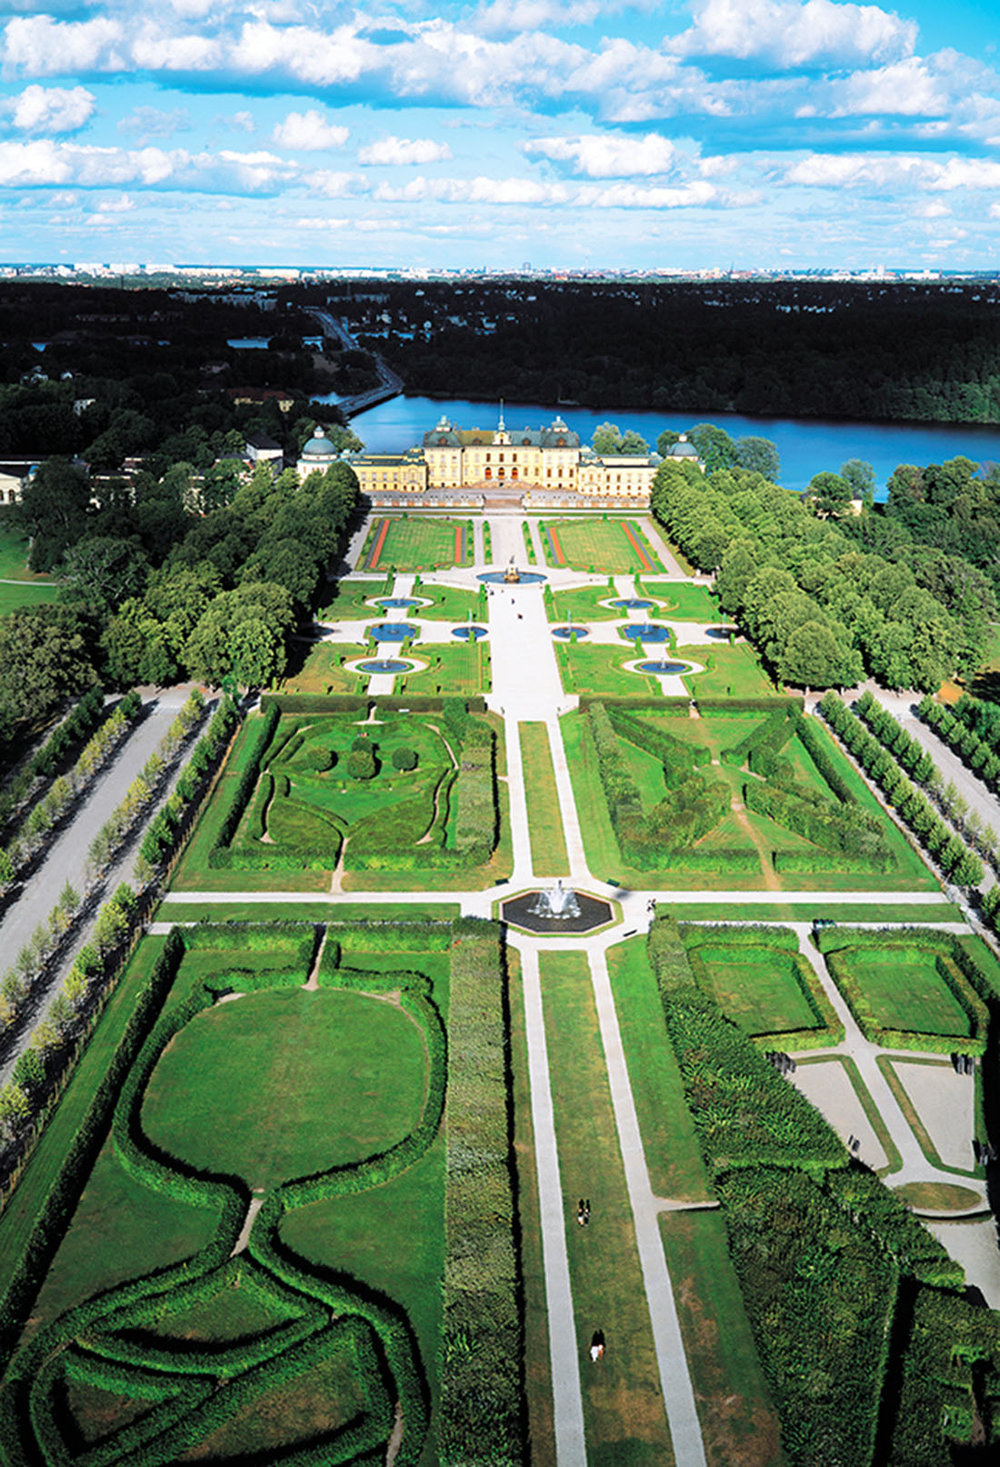 Walkways wind through the formal baroque and English-style gardens that surround the palace, which fronts Lake Mälaren.